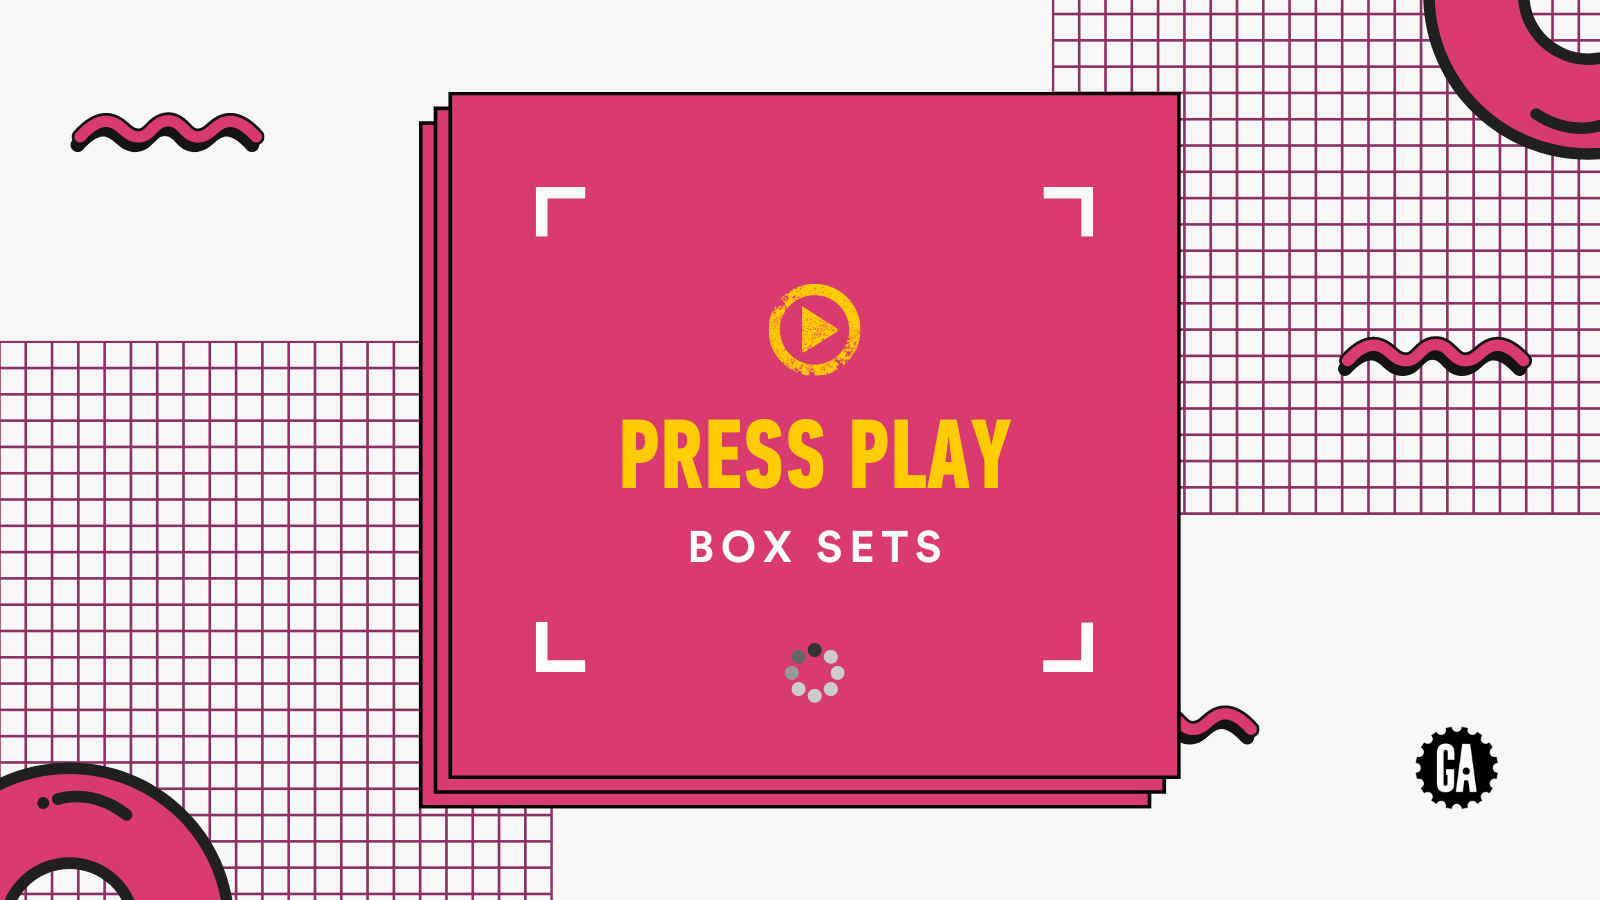 [Press Play] Boxsets | A Mini Marketing Course